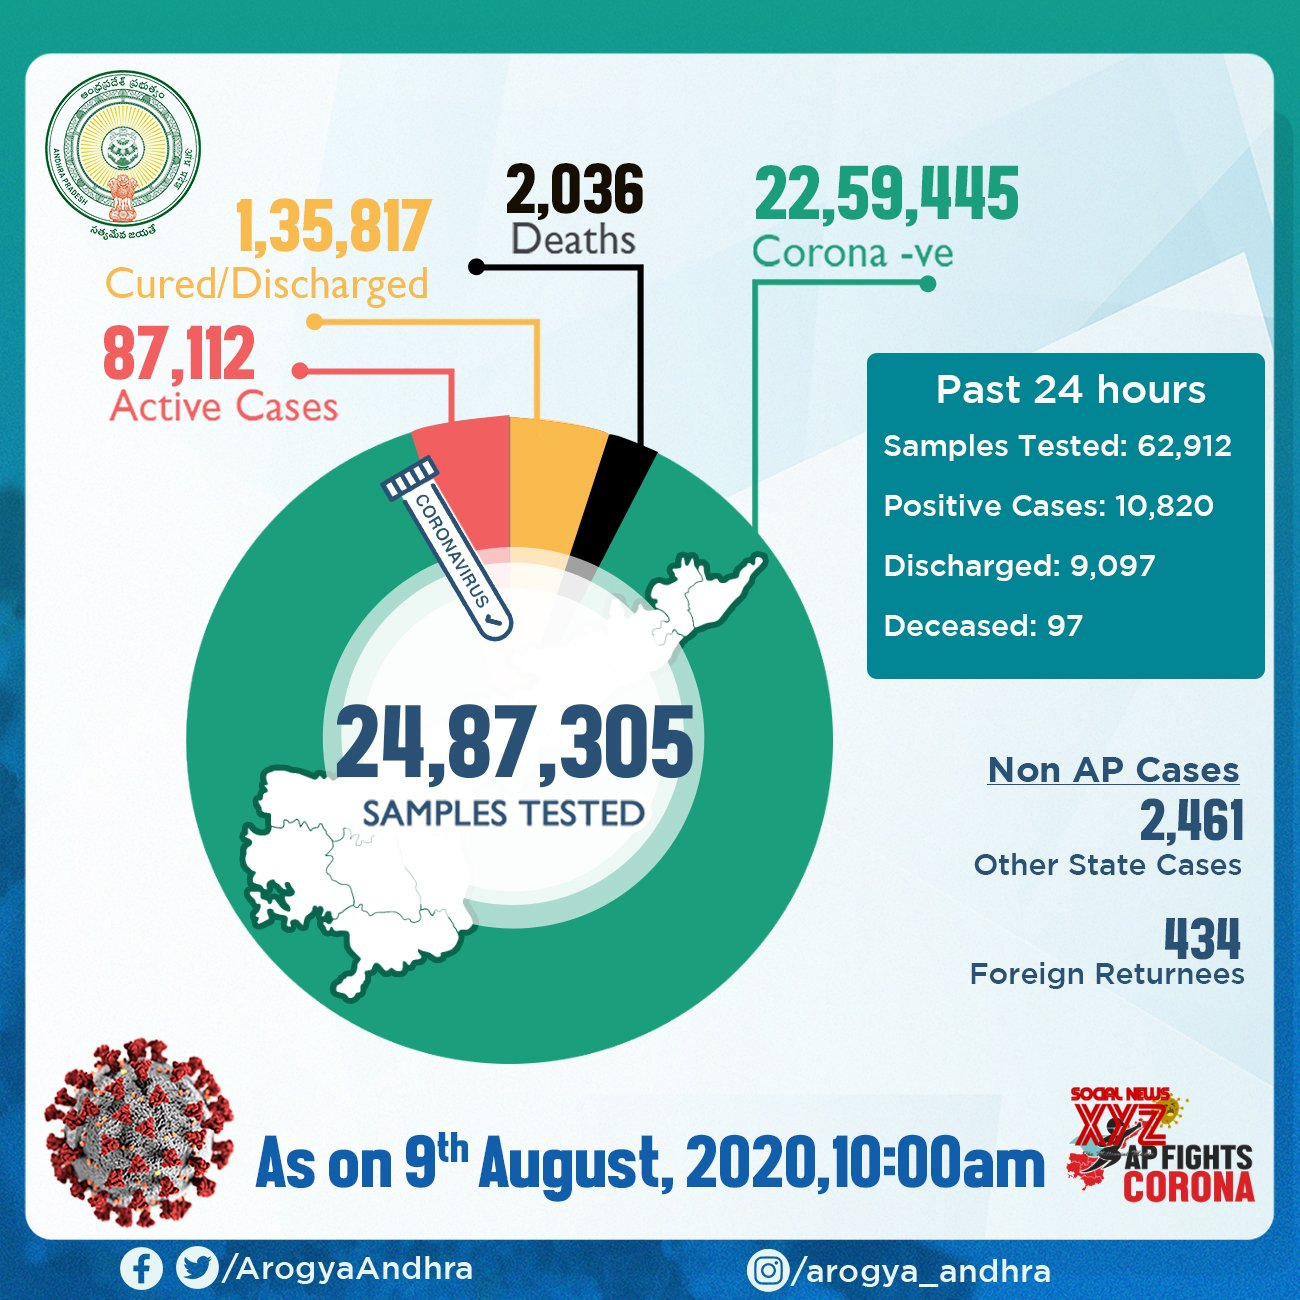 Andhra Pradesh Has 10,820 Positive Cases And The Total Positive Cases In The State Increased To 227,860 As Of 9th August 10 AM